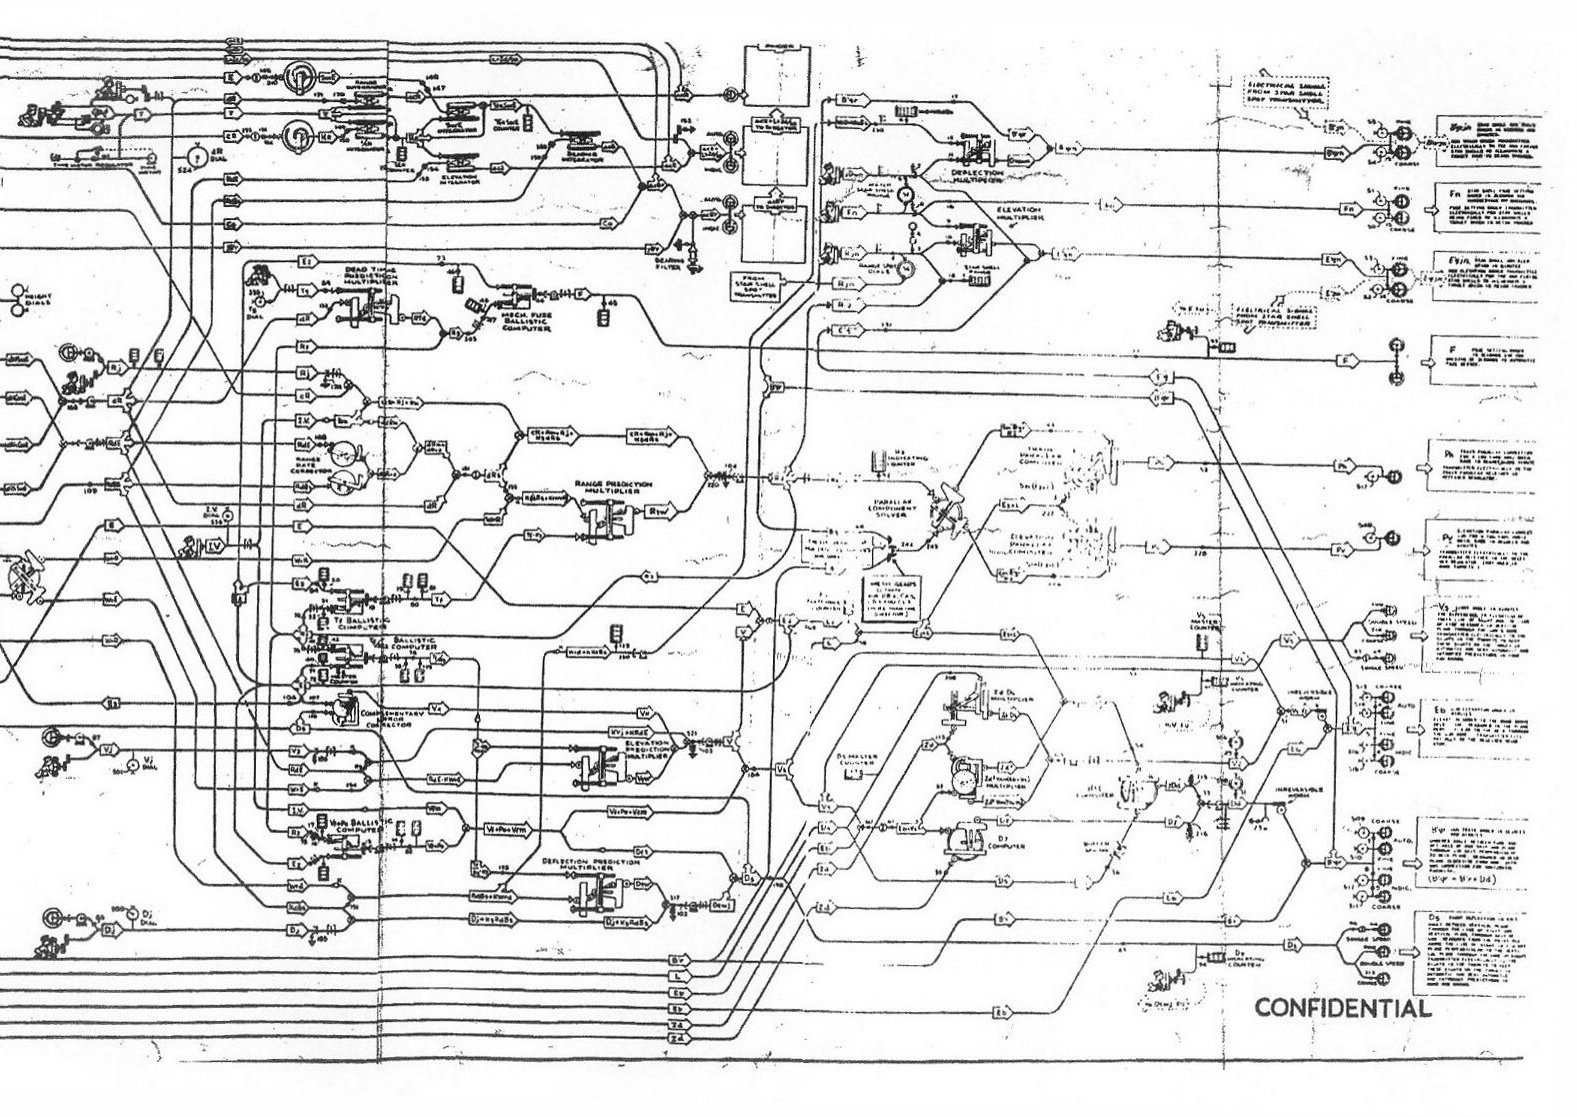 flow schematic computer mk 1mod 7 rh eugeneleeslover com computer schematic diagram pdf schematic diagram of computer headsets